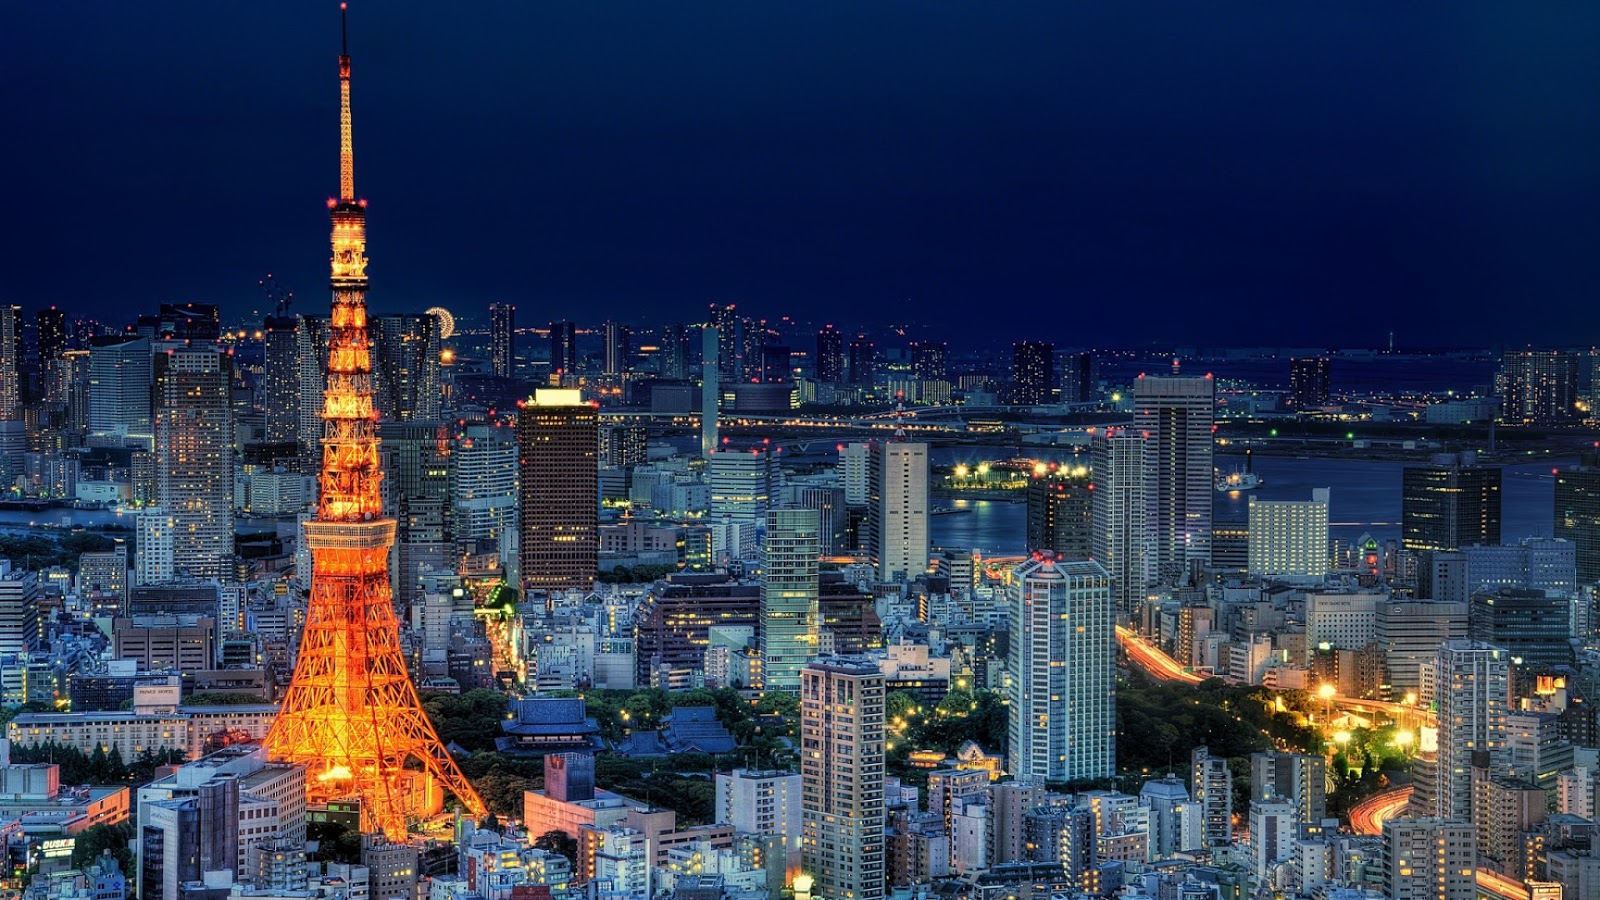 Lebron James Iphone Wallpaper Tokyo Tower Android 4k Ultra Hd Wallpapers Free Download